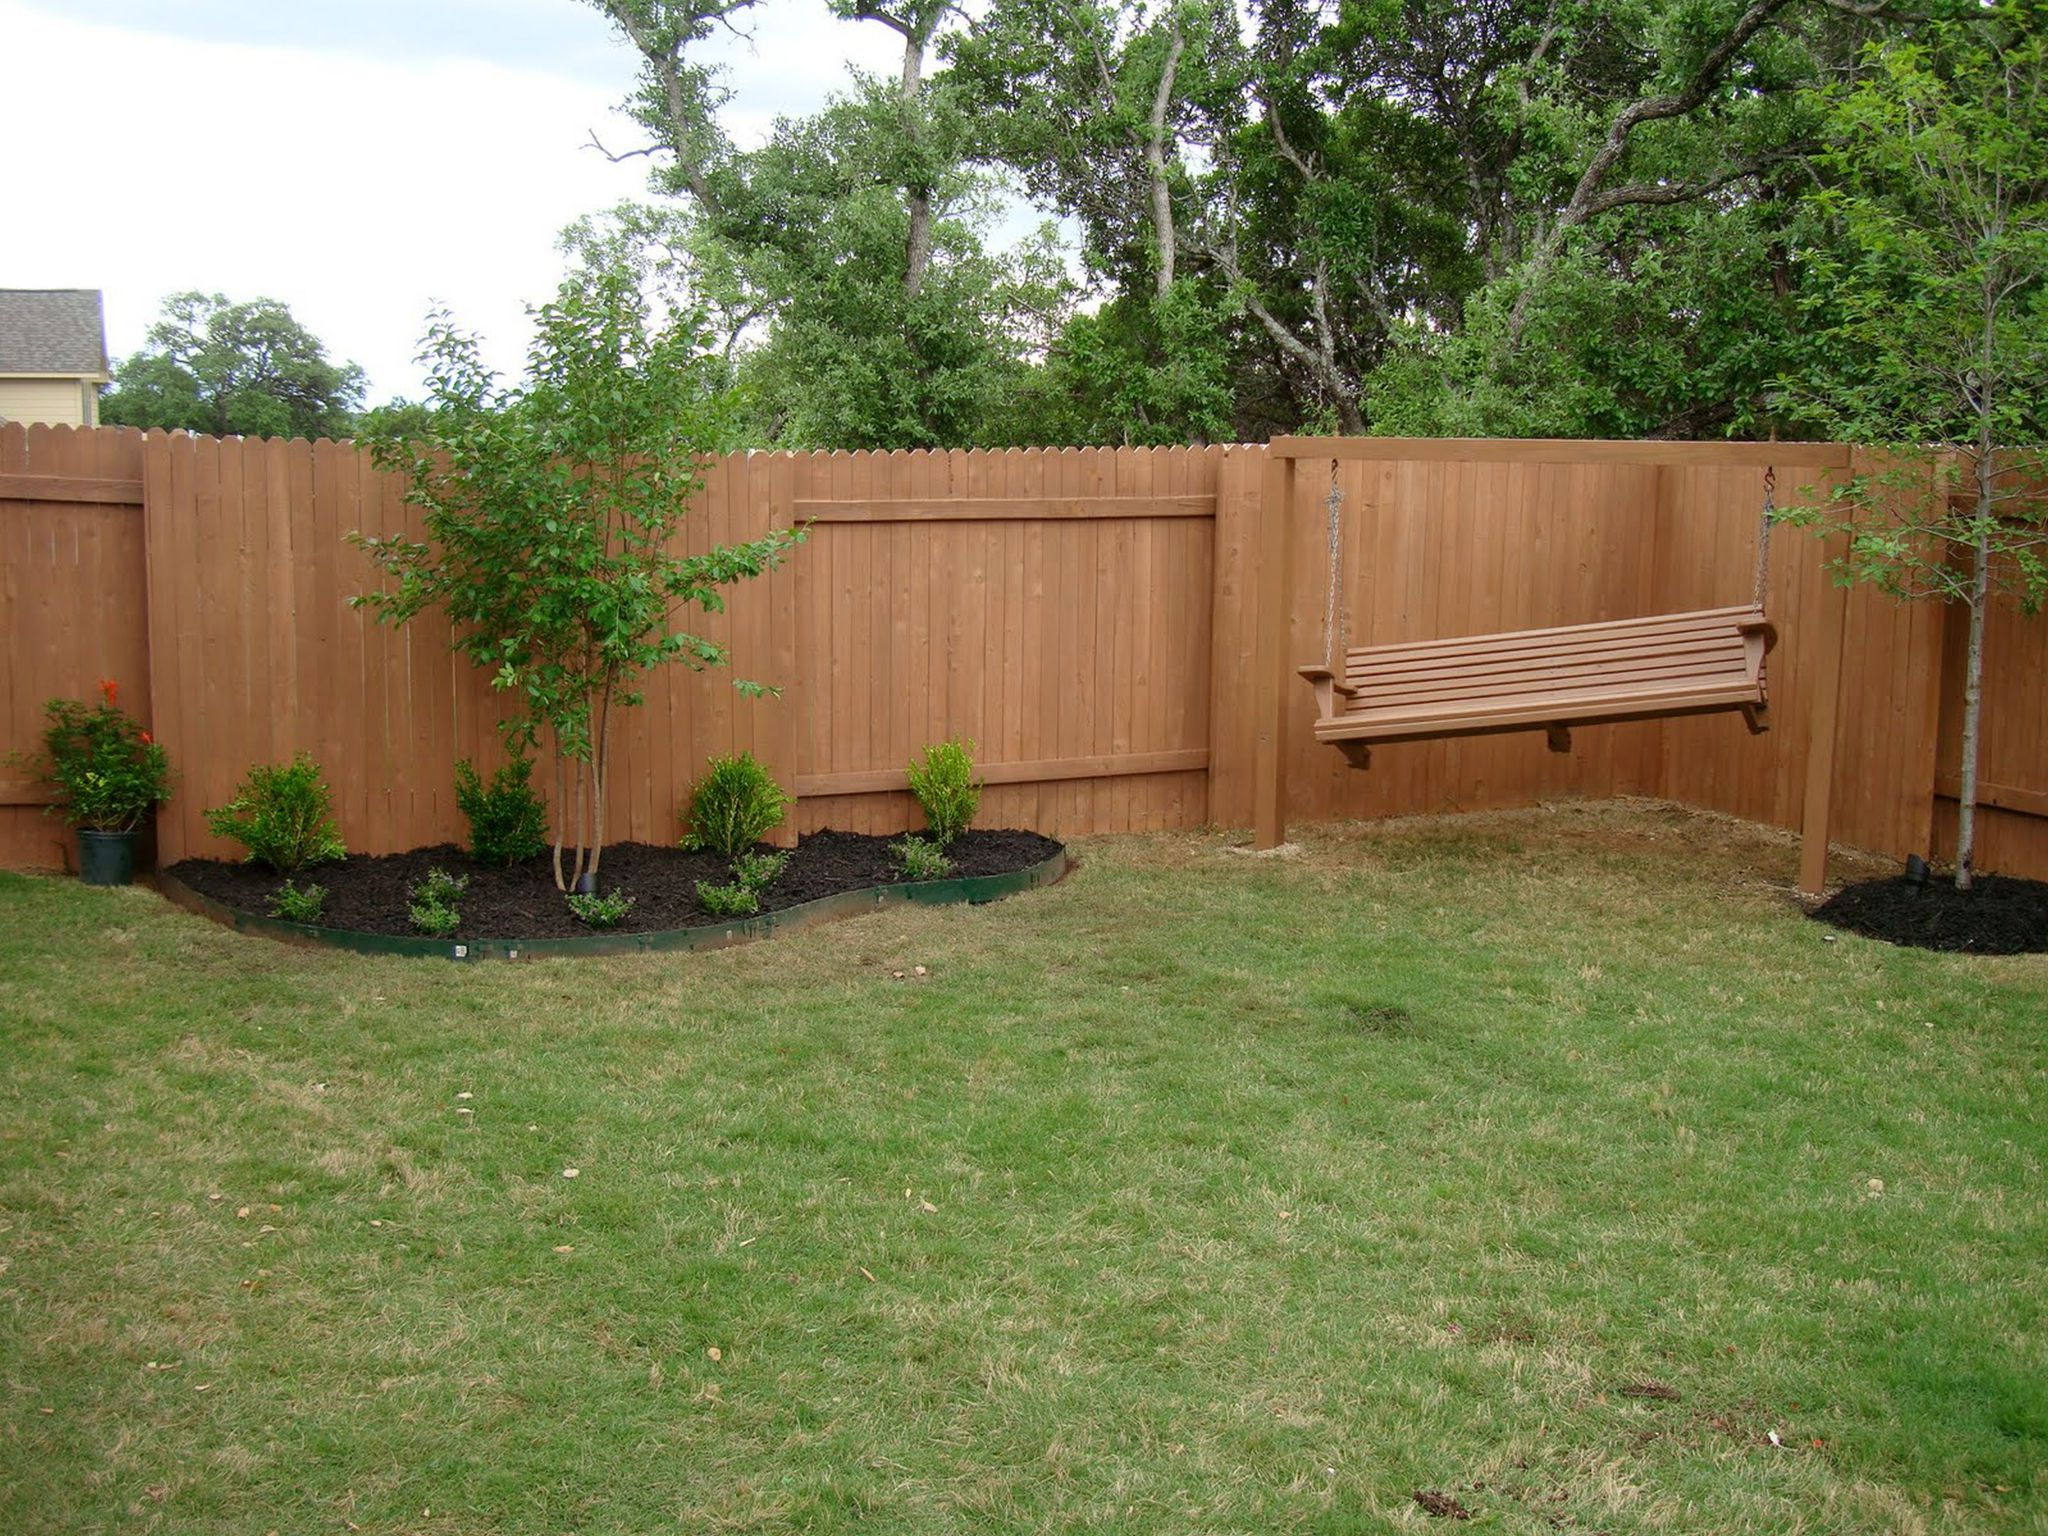 Interesting Wooden Fence also Hanging Chair plus Plants and Grasses